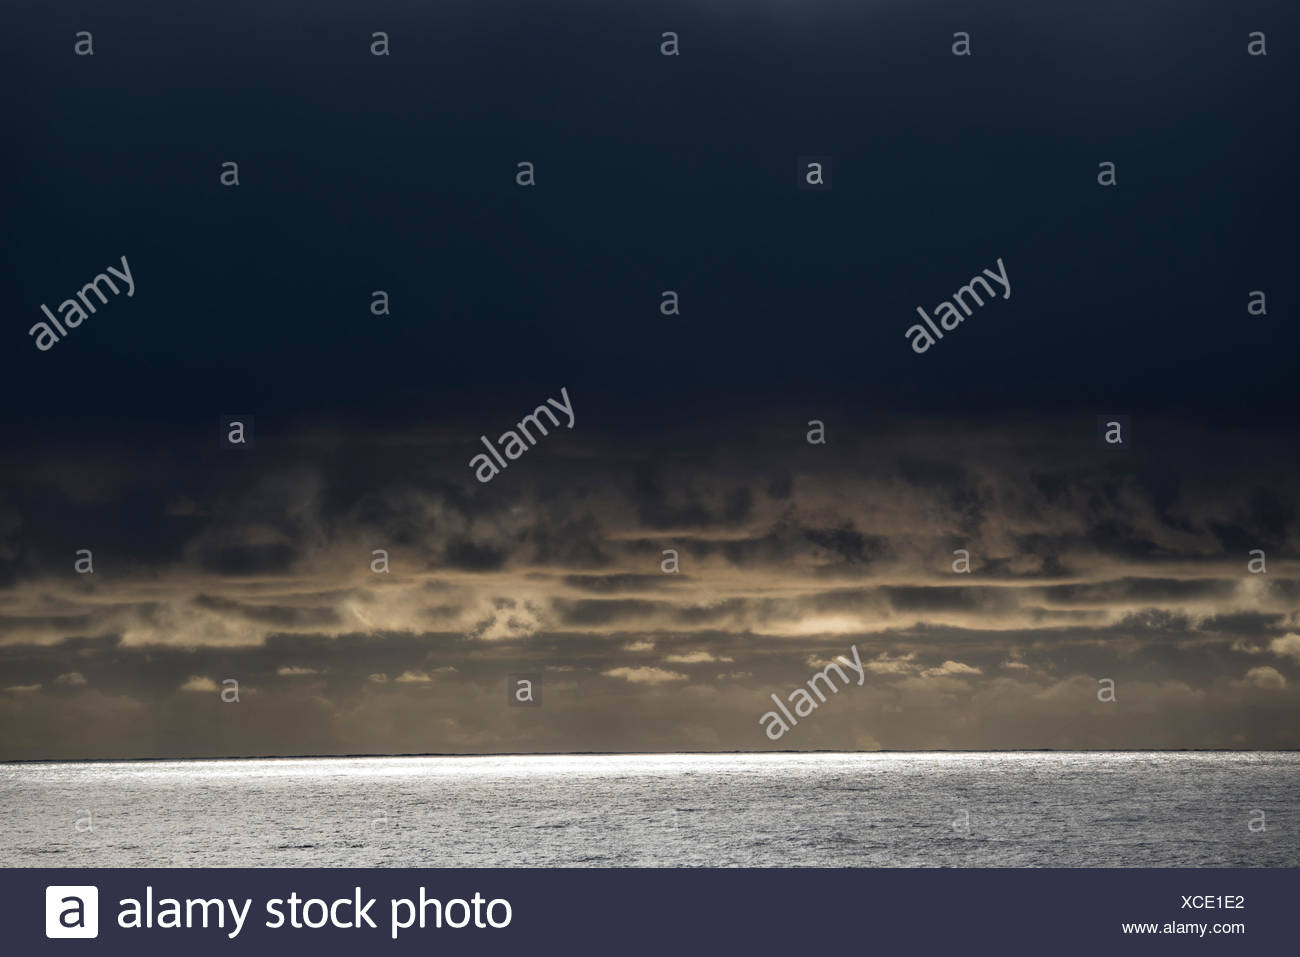 Sunset on the open water heading to the Falkland Islands. - Stock Image